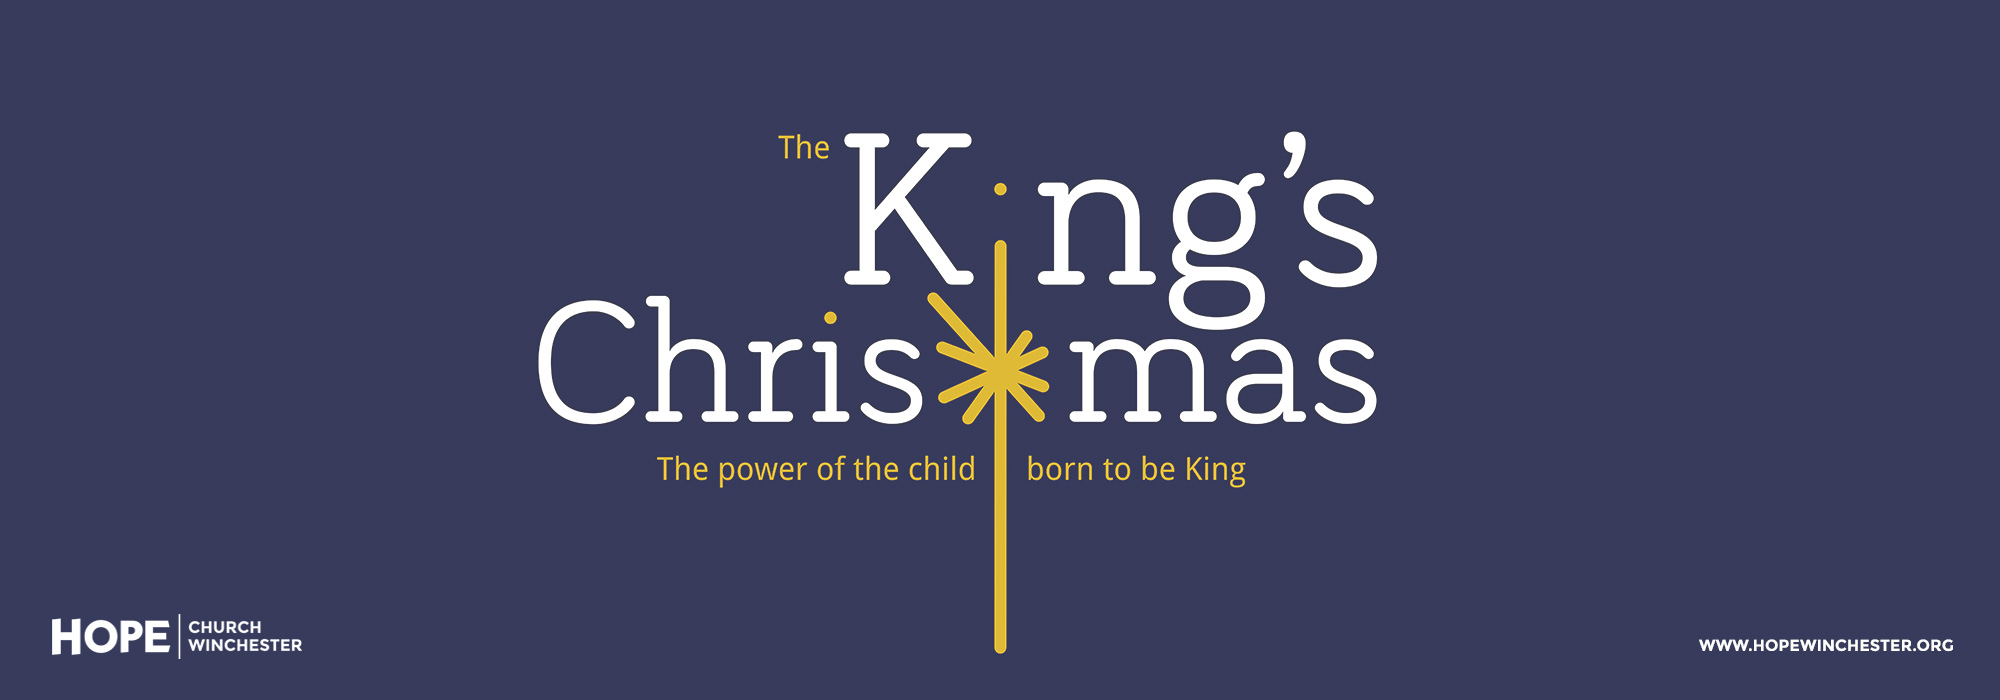 w-events-kingschristmas